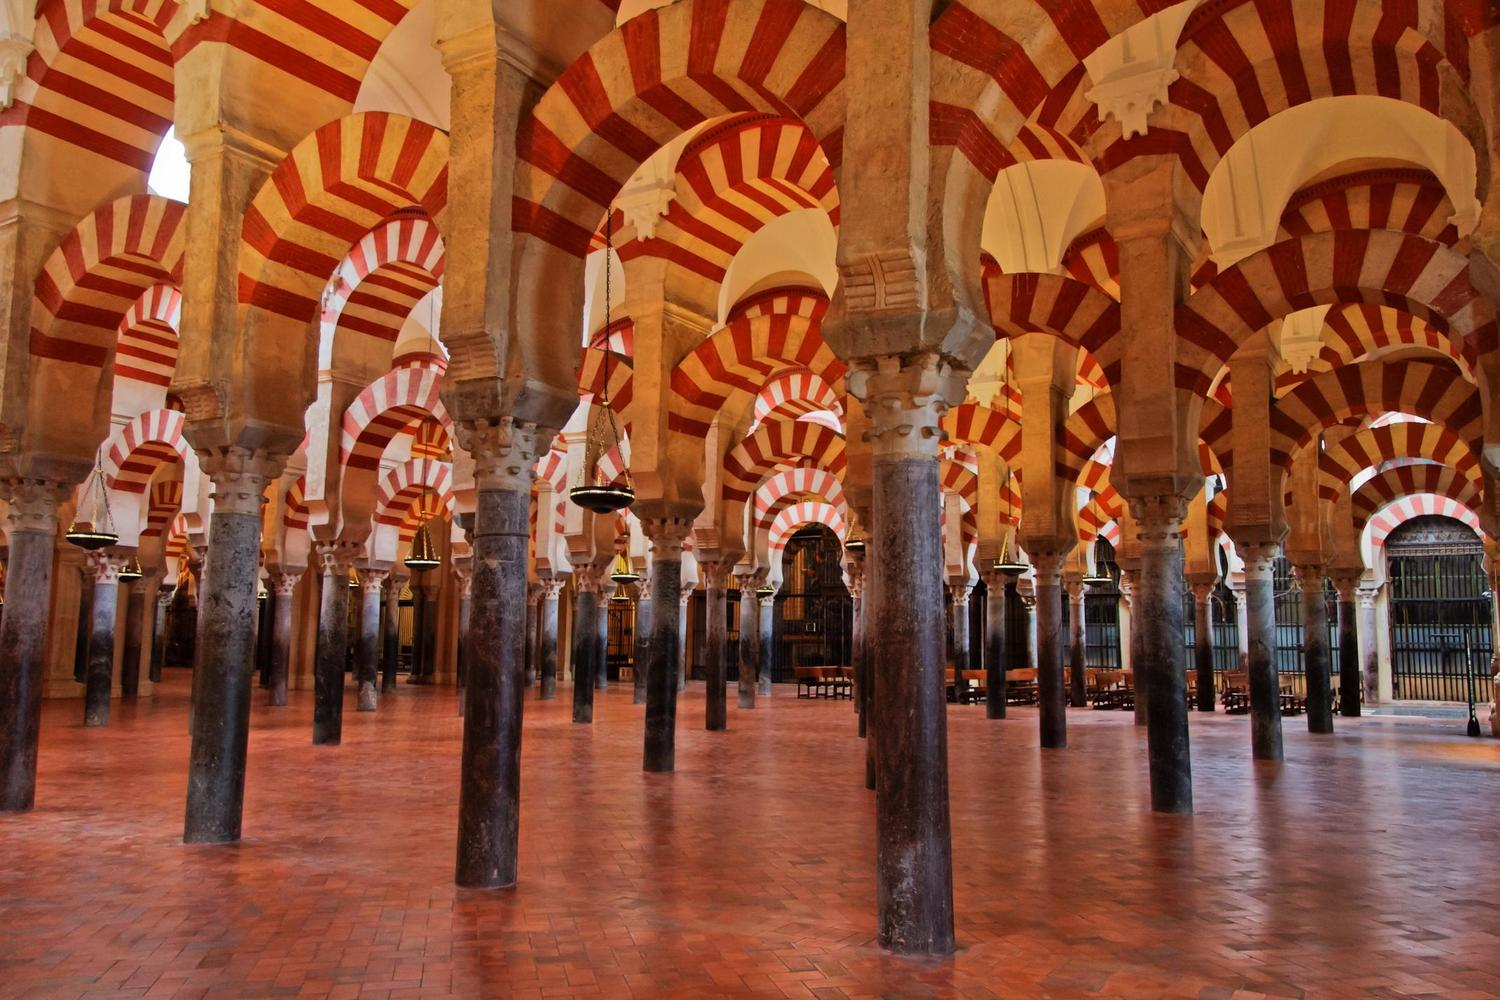 The sea of arches inside Cordoba's great mosque, Andalucia